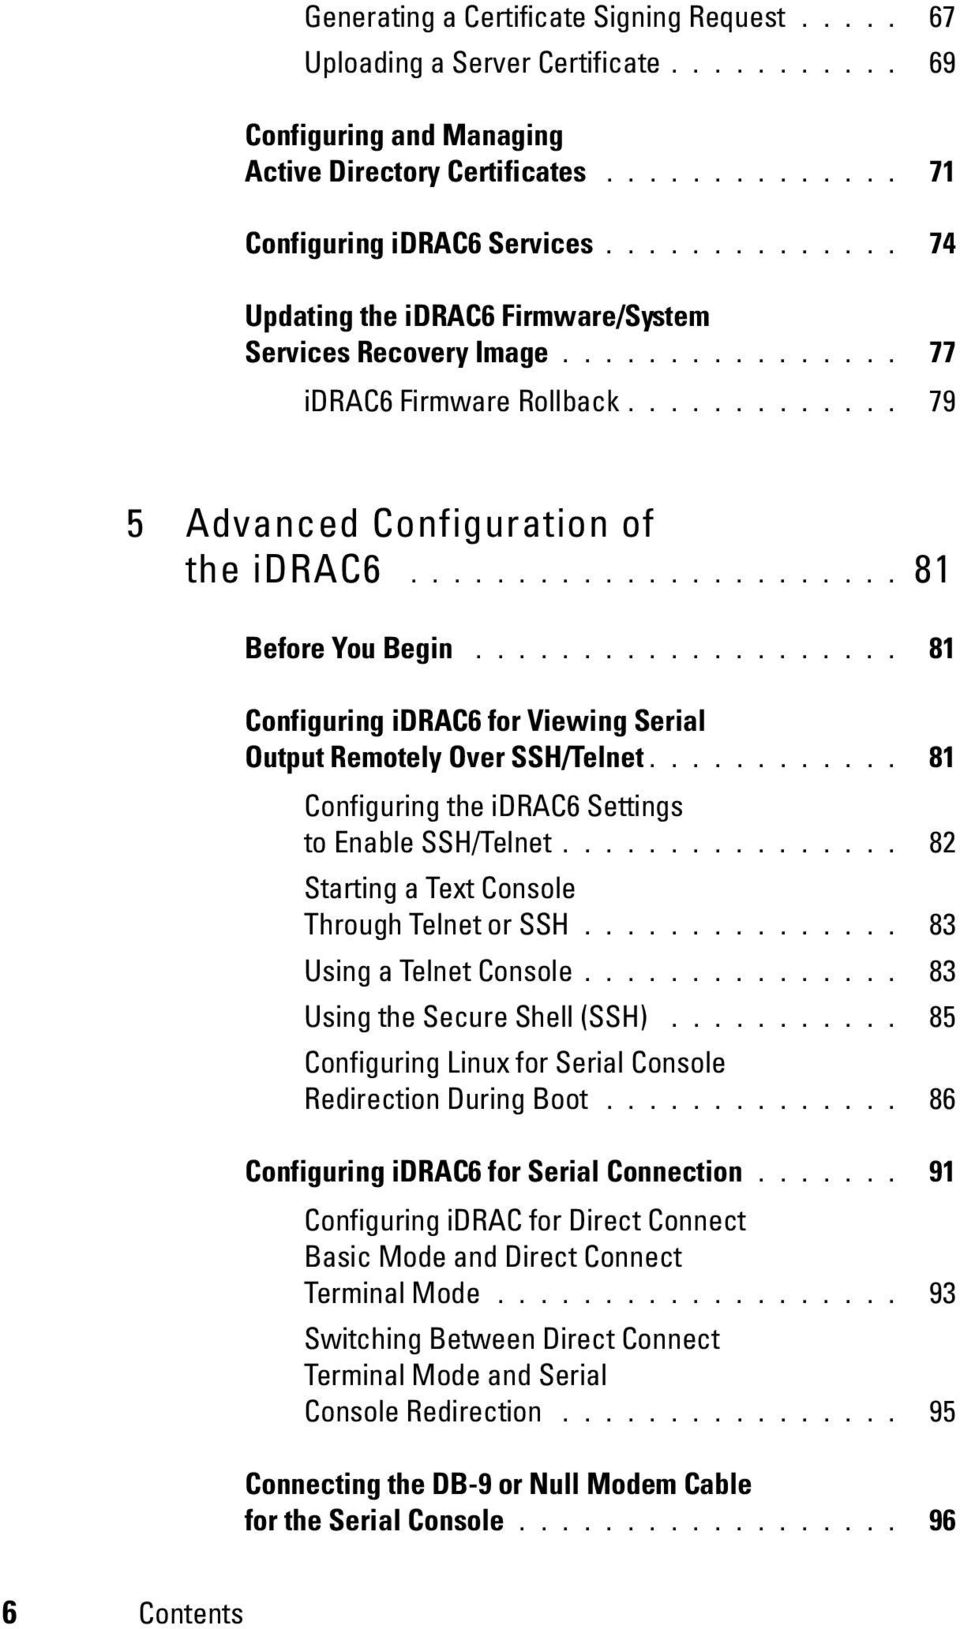 Integrated Dell Remote Access Controller 6 (idrac6) Version